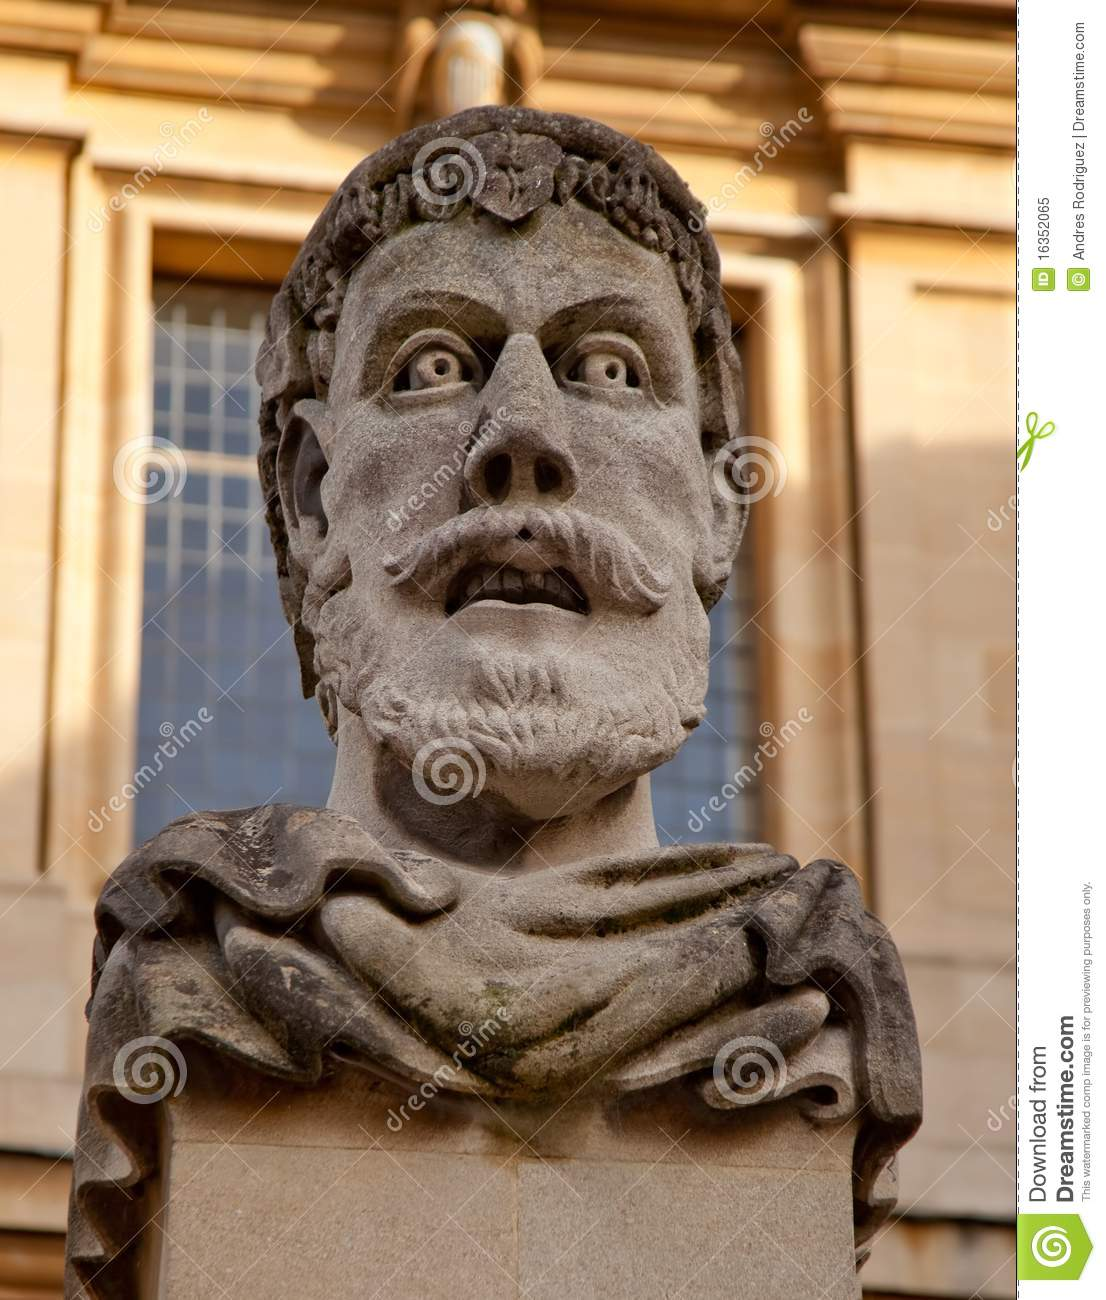 Face carved in stone royalty free stock photo image